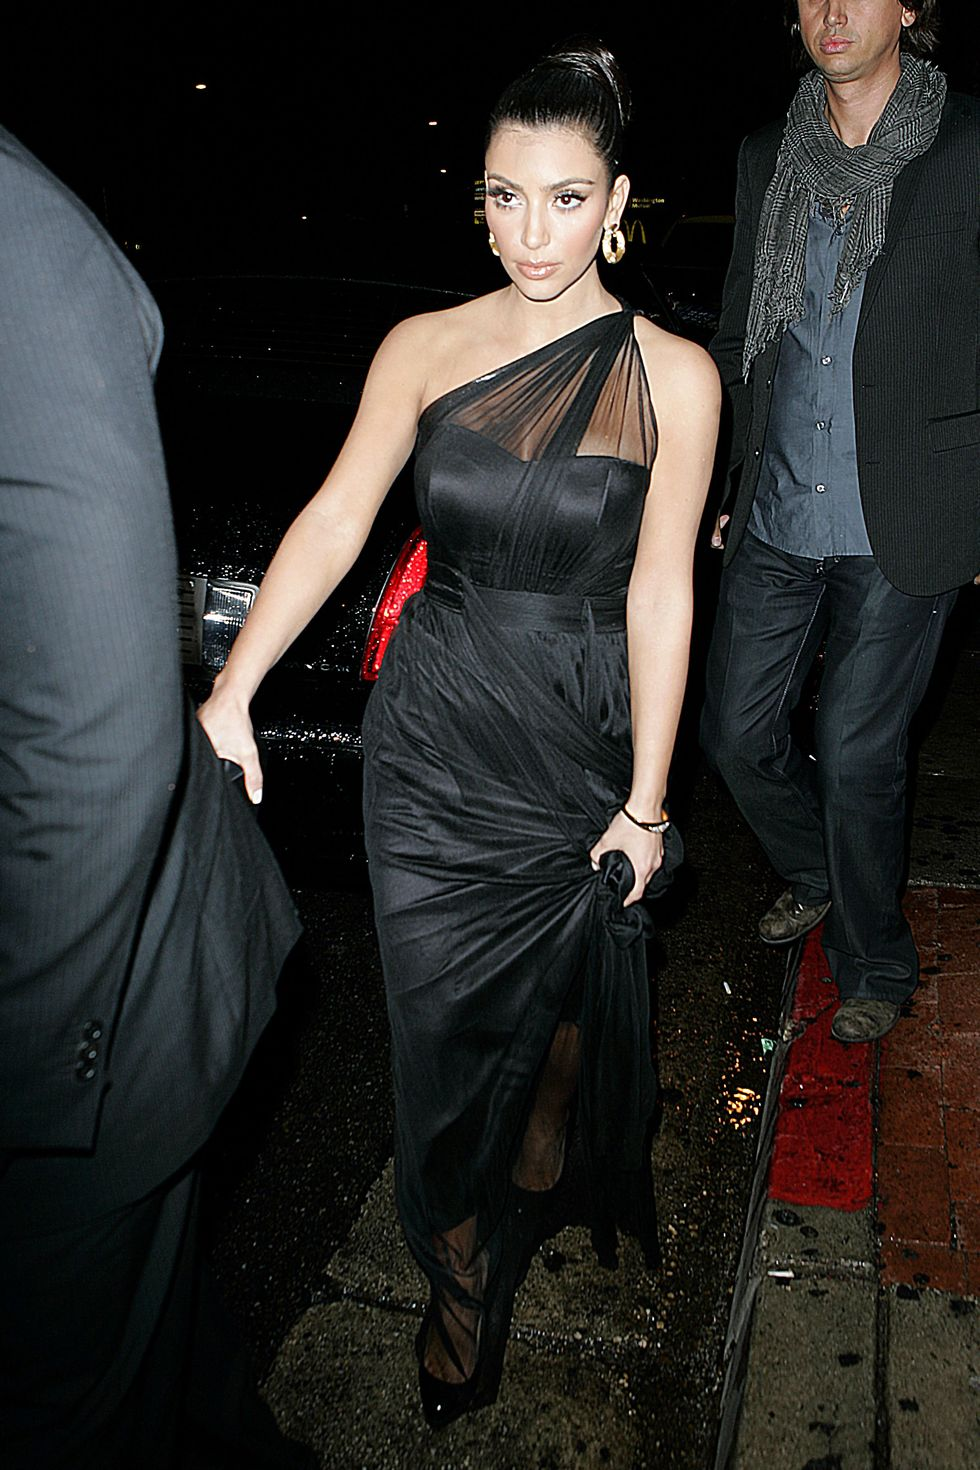 kim-kardashian-candids-at-hyde-lounge-in-west-hollywood-01